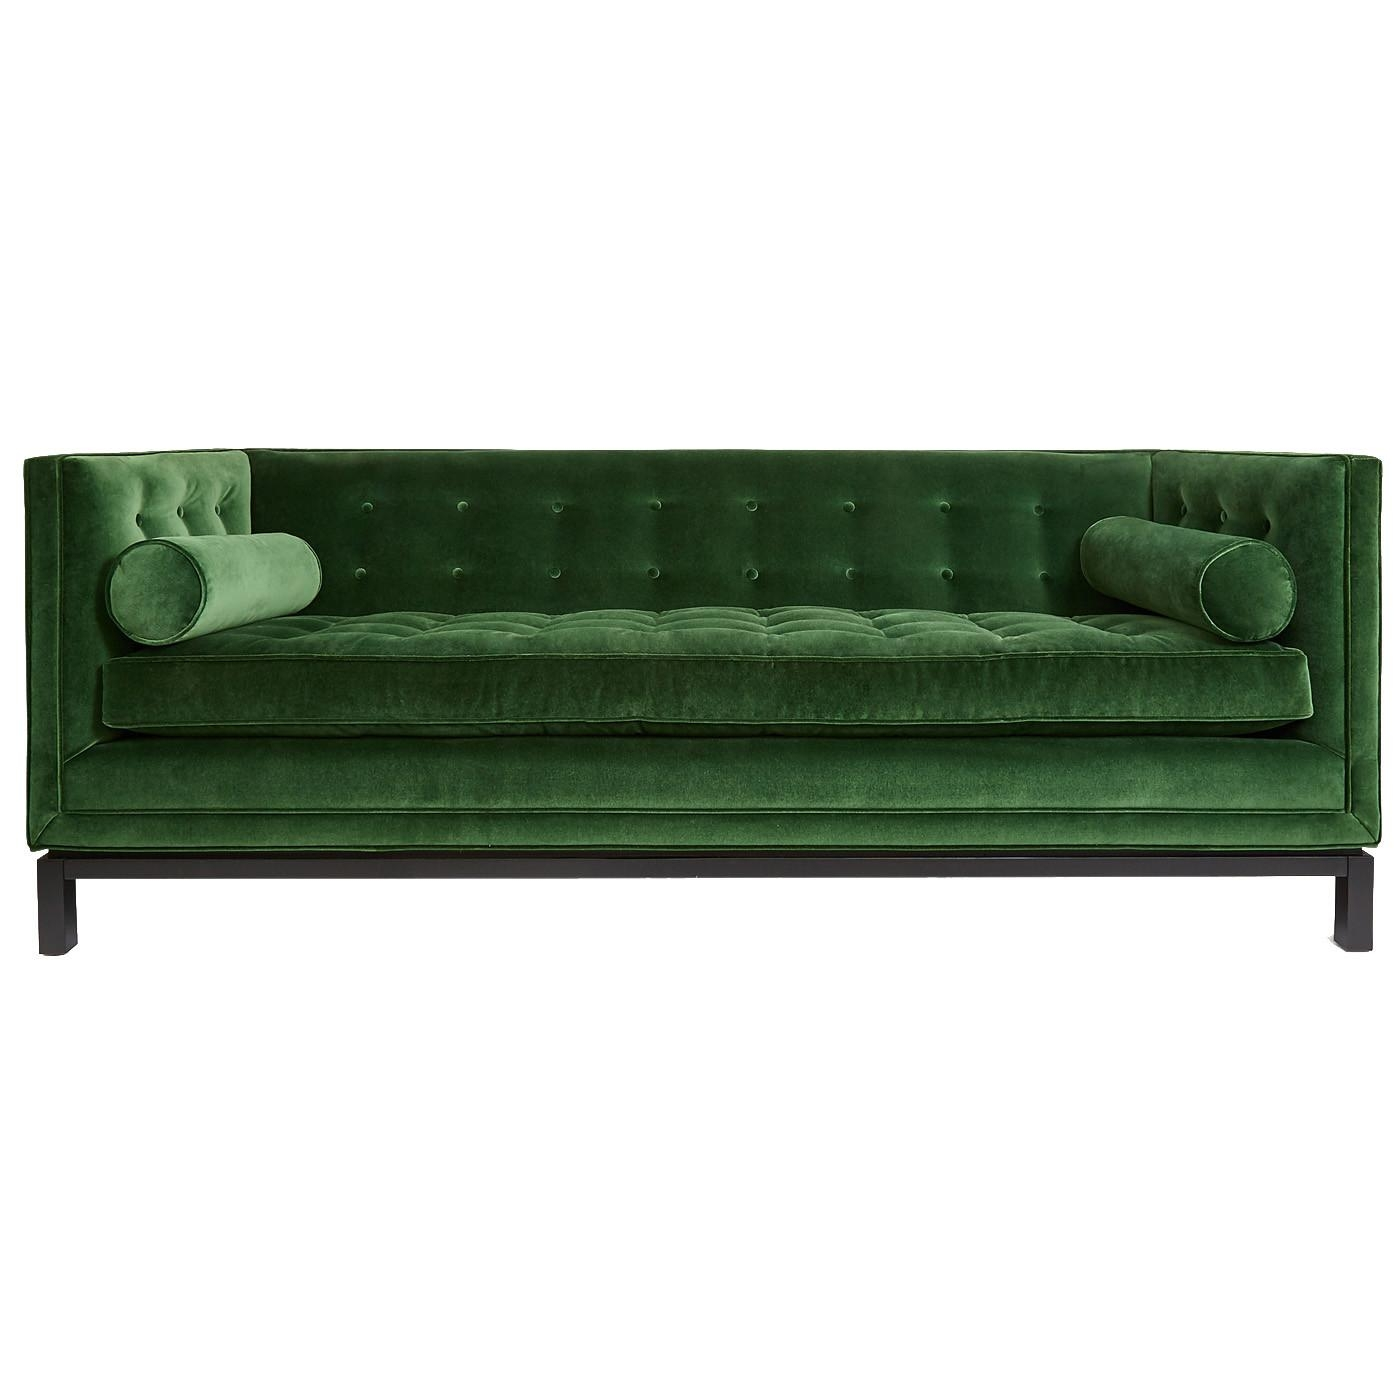 Furniture: Burgundy Sleeper Sofa | Ava Velvet Tufted Sleeper Sofa Pertaining To Ava Velvet Tufted Sleeper Sofas (View 16 of 20)